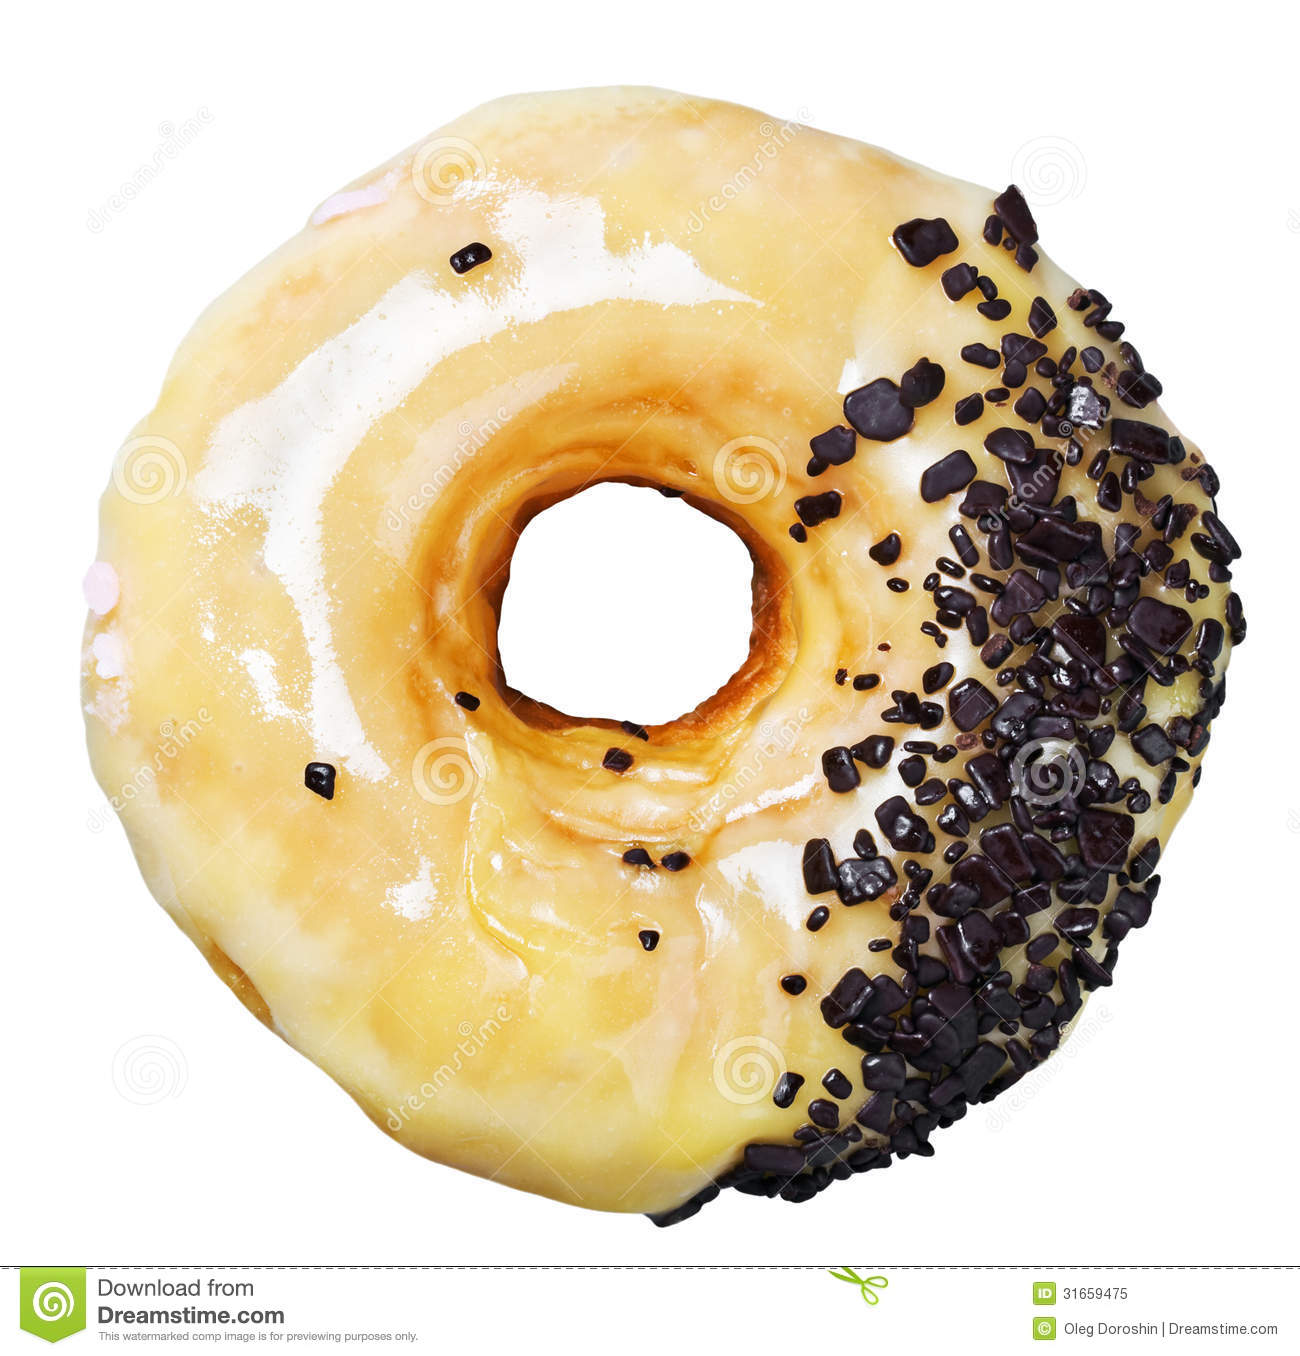 Donut with caramel and chocolate chips isolated on white background.